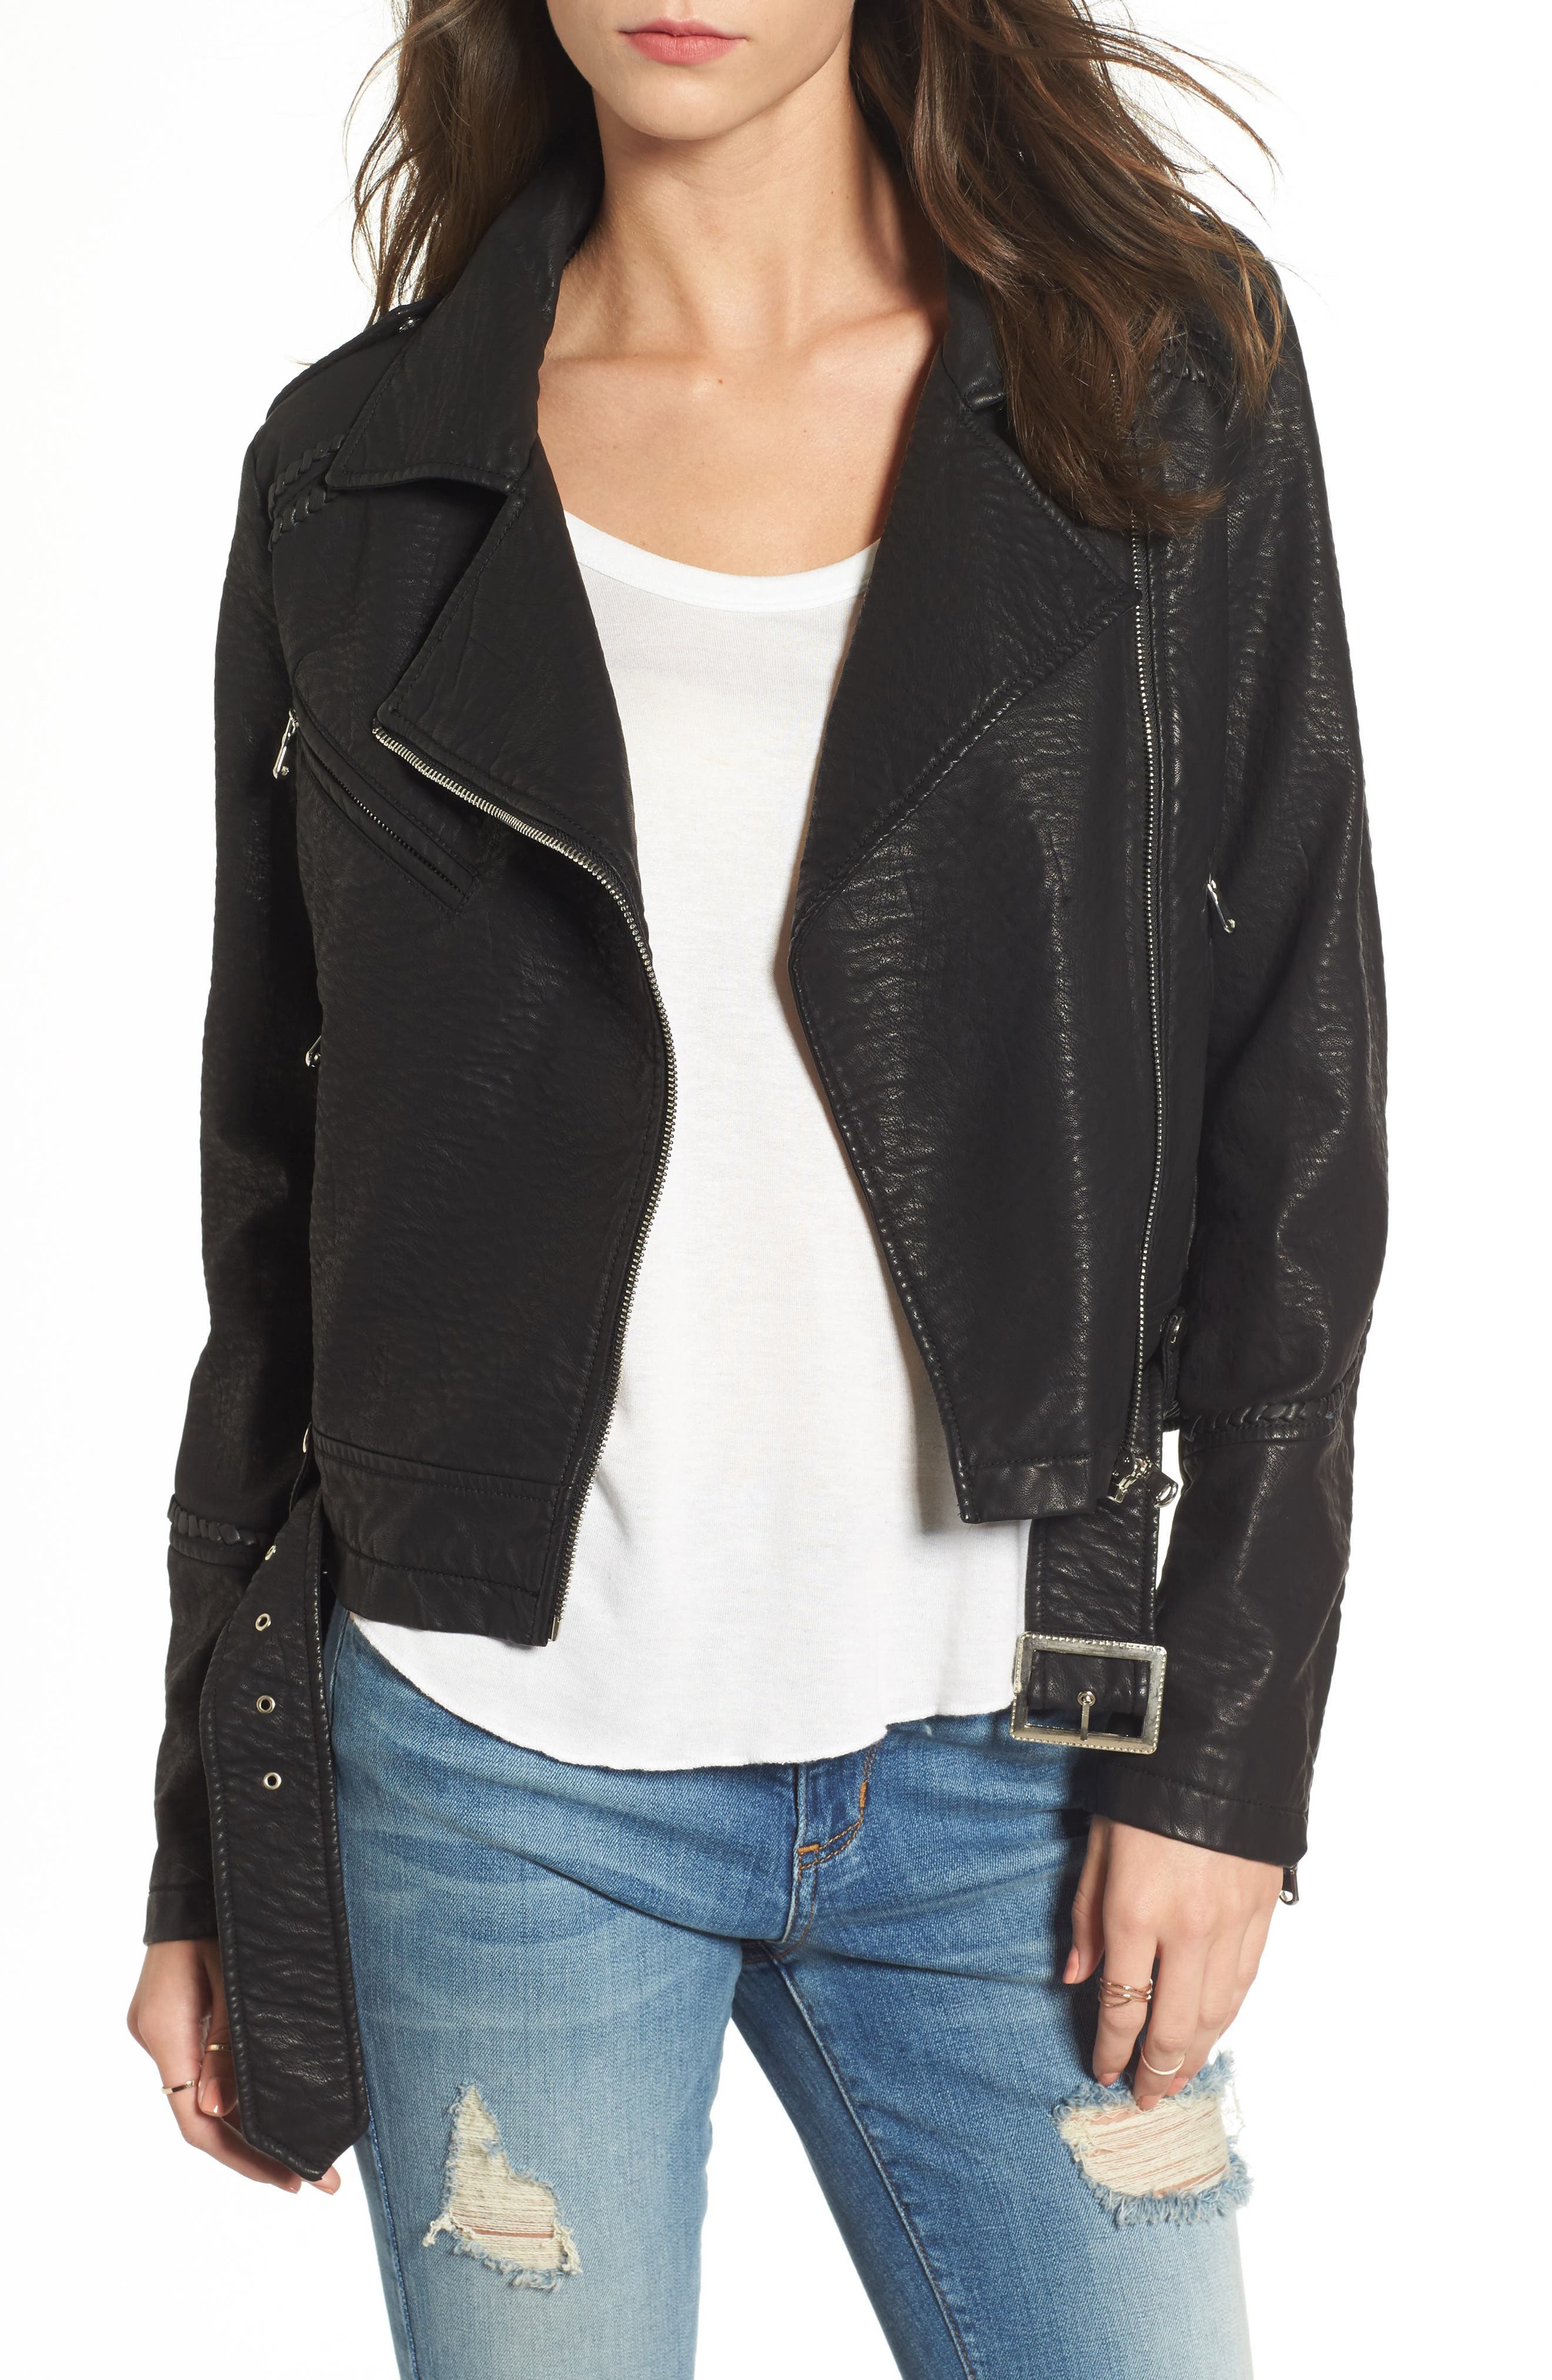 Main Image - Lira Clothing Furthermore Faux Leather Jacket